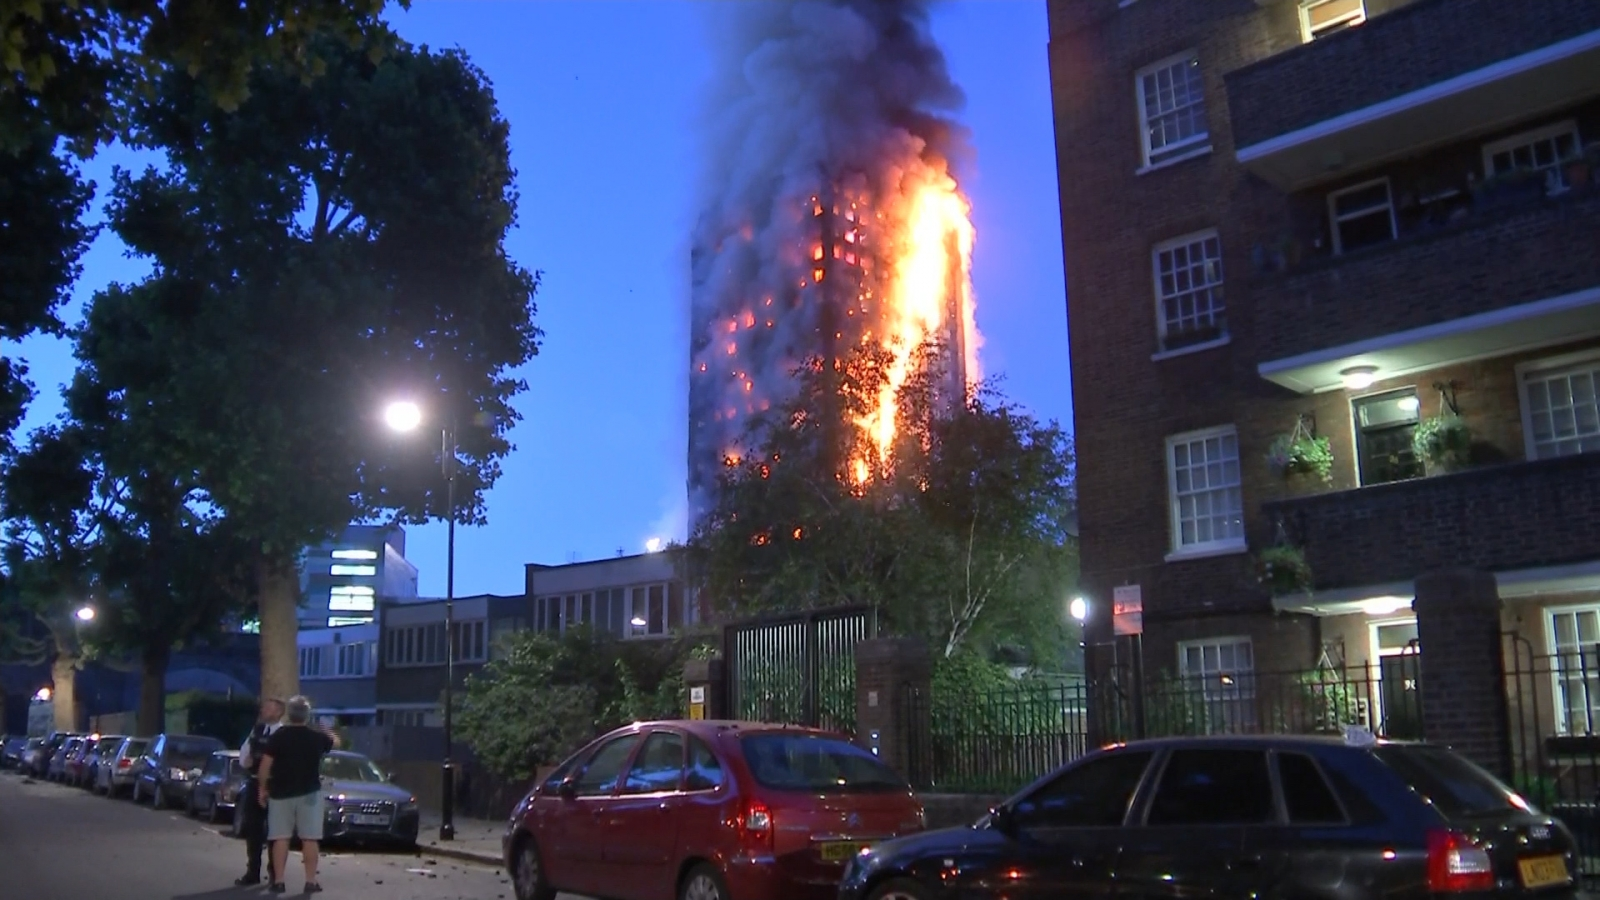 Local Reverend describes how London fire brought images of 9/11 back